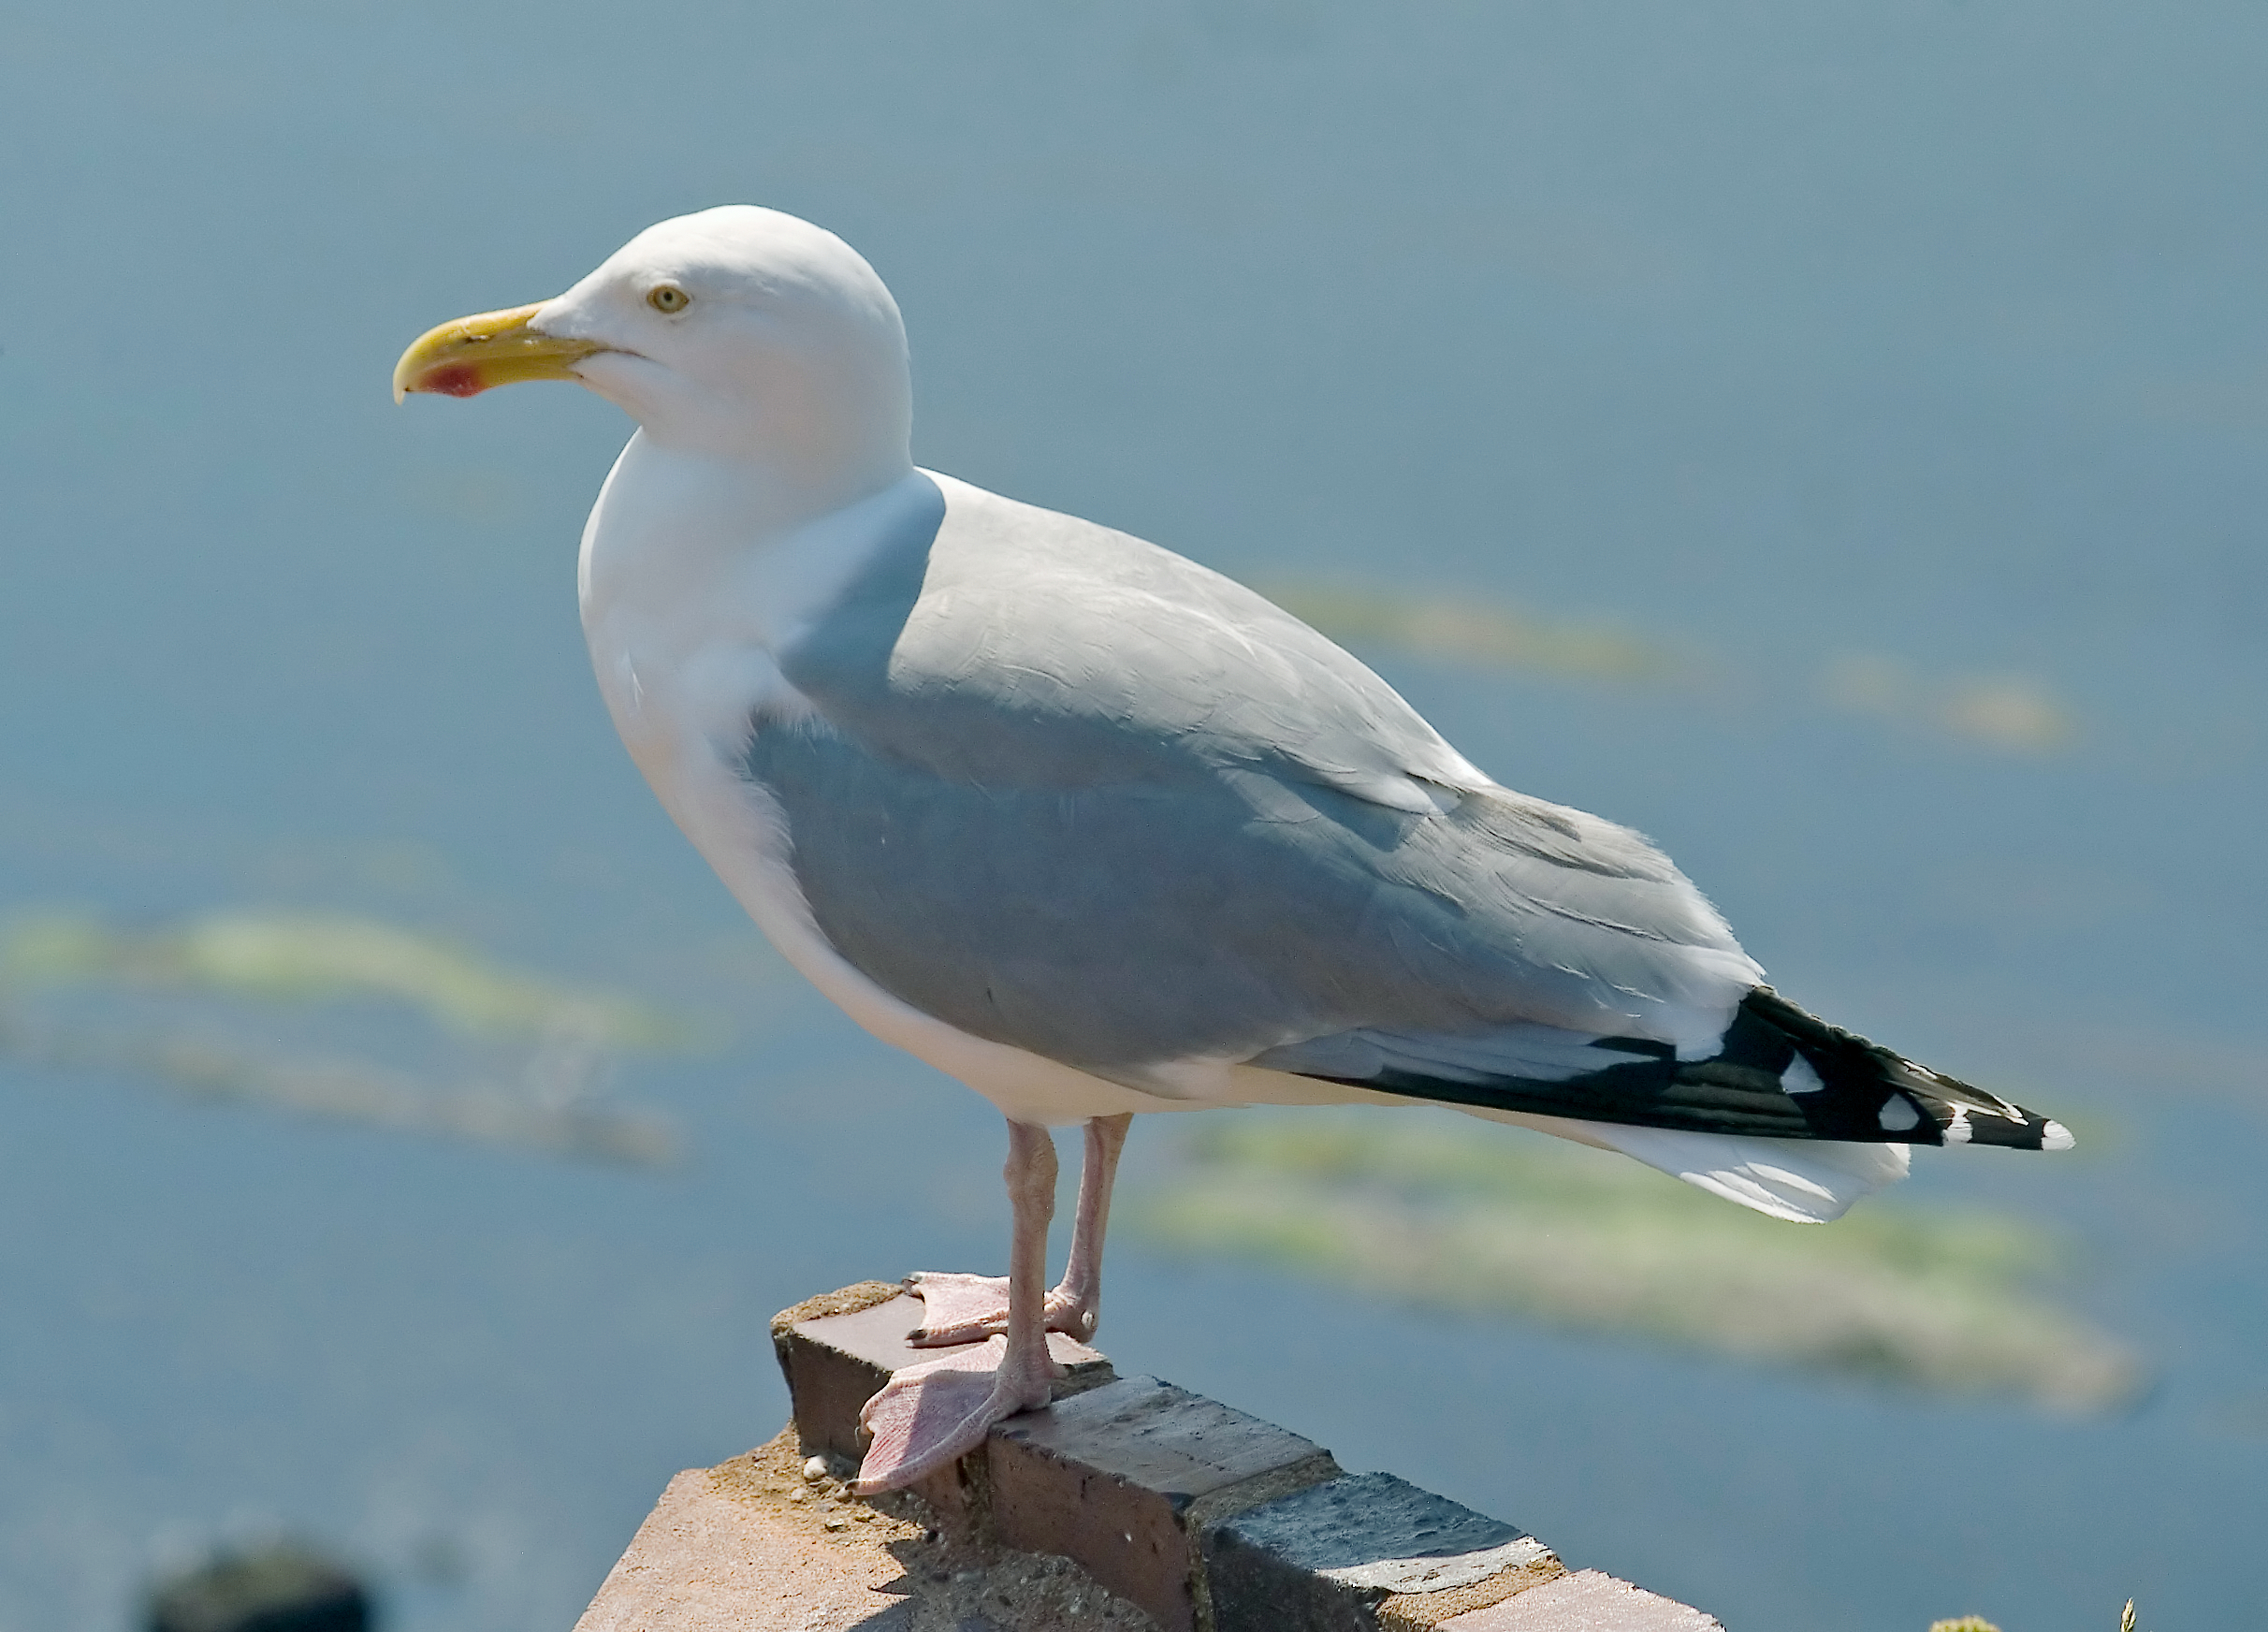 Larus argentatus01.jpg © Kulac (Wikimedia Commons - CC-BY-SA-2.5; CC-BY-SA-3.0-migrated; GFDL)